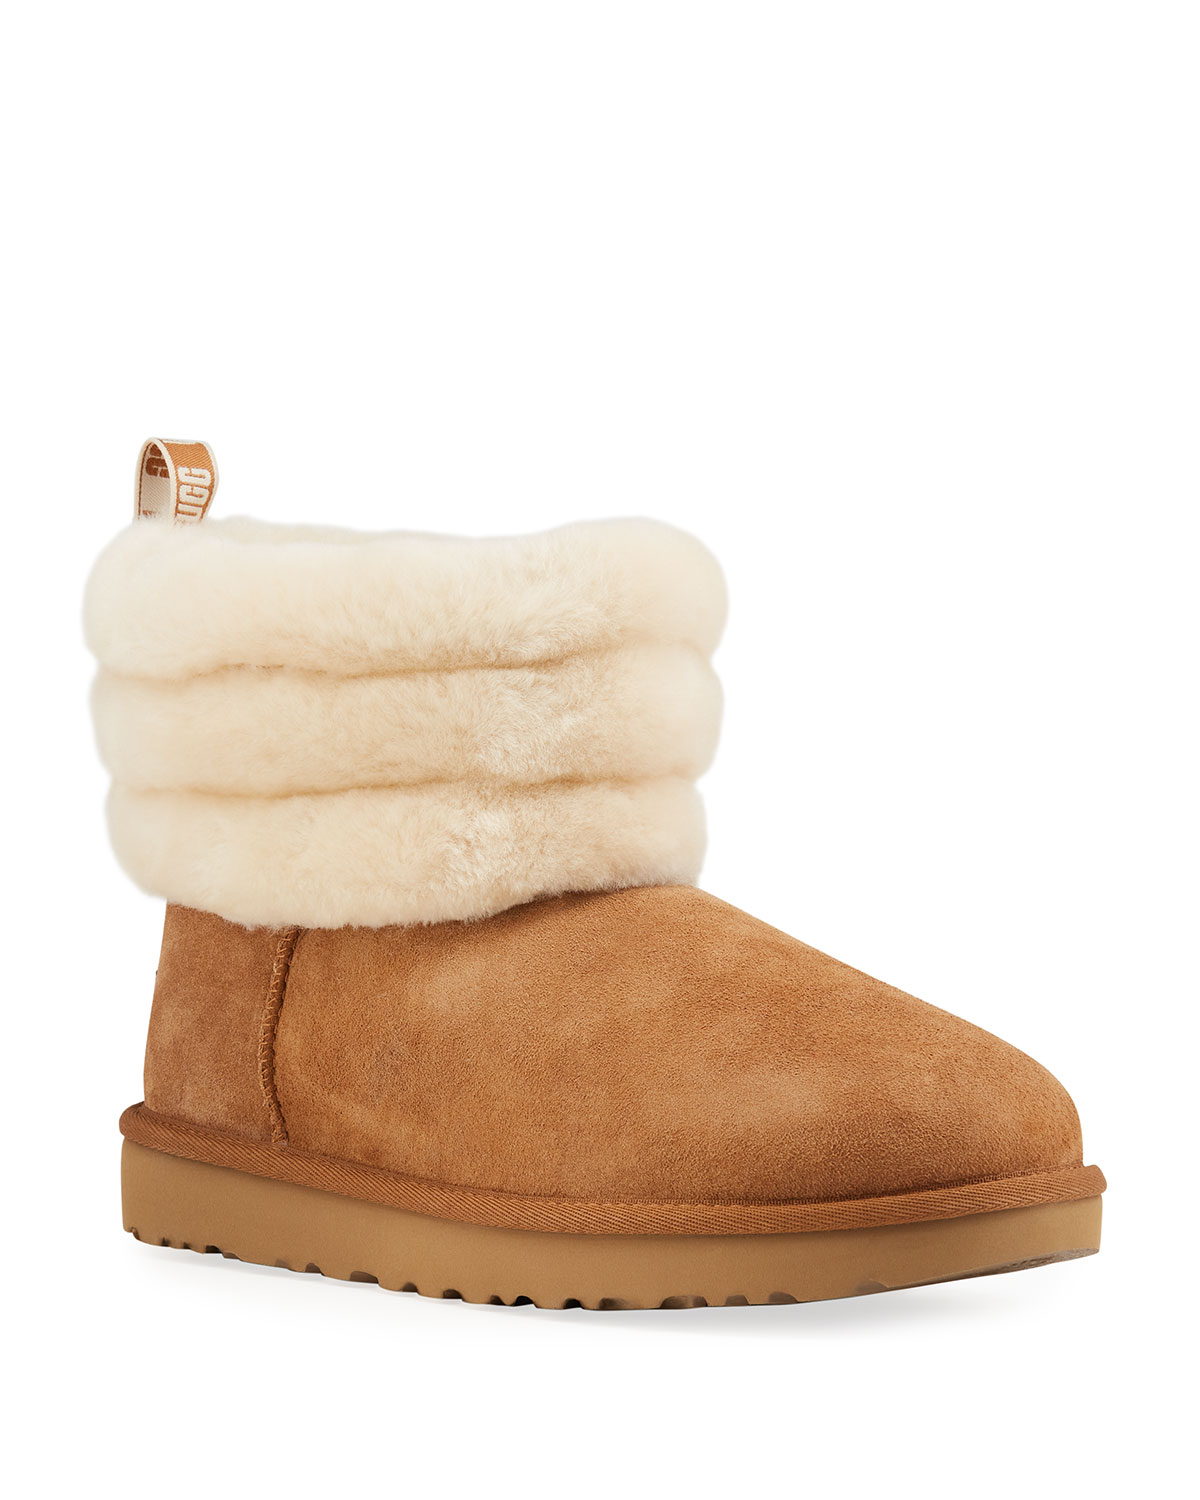 b2052a940a08 UGG Fluff Mini Quilted Short Boots